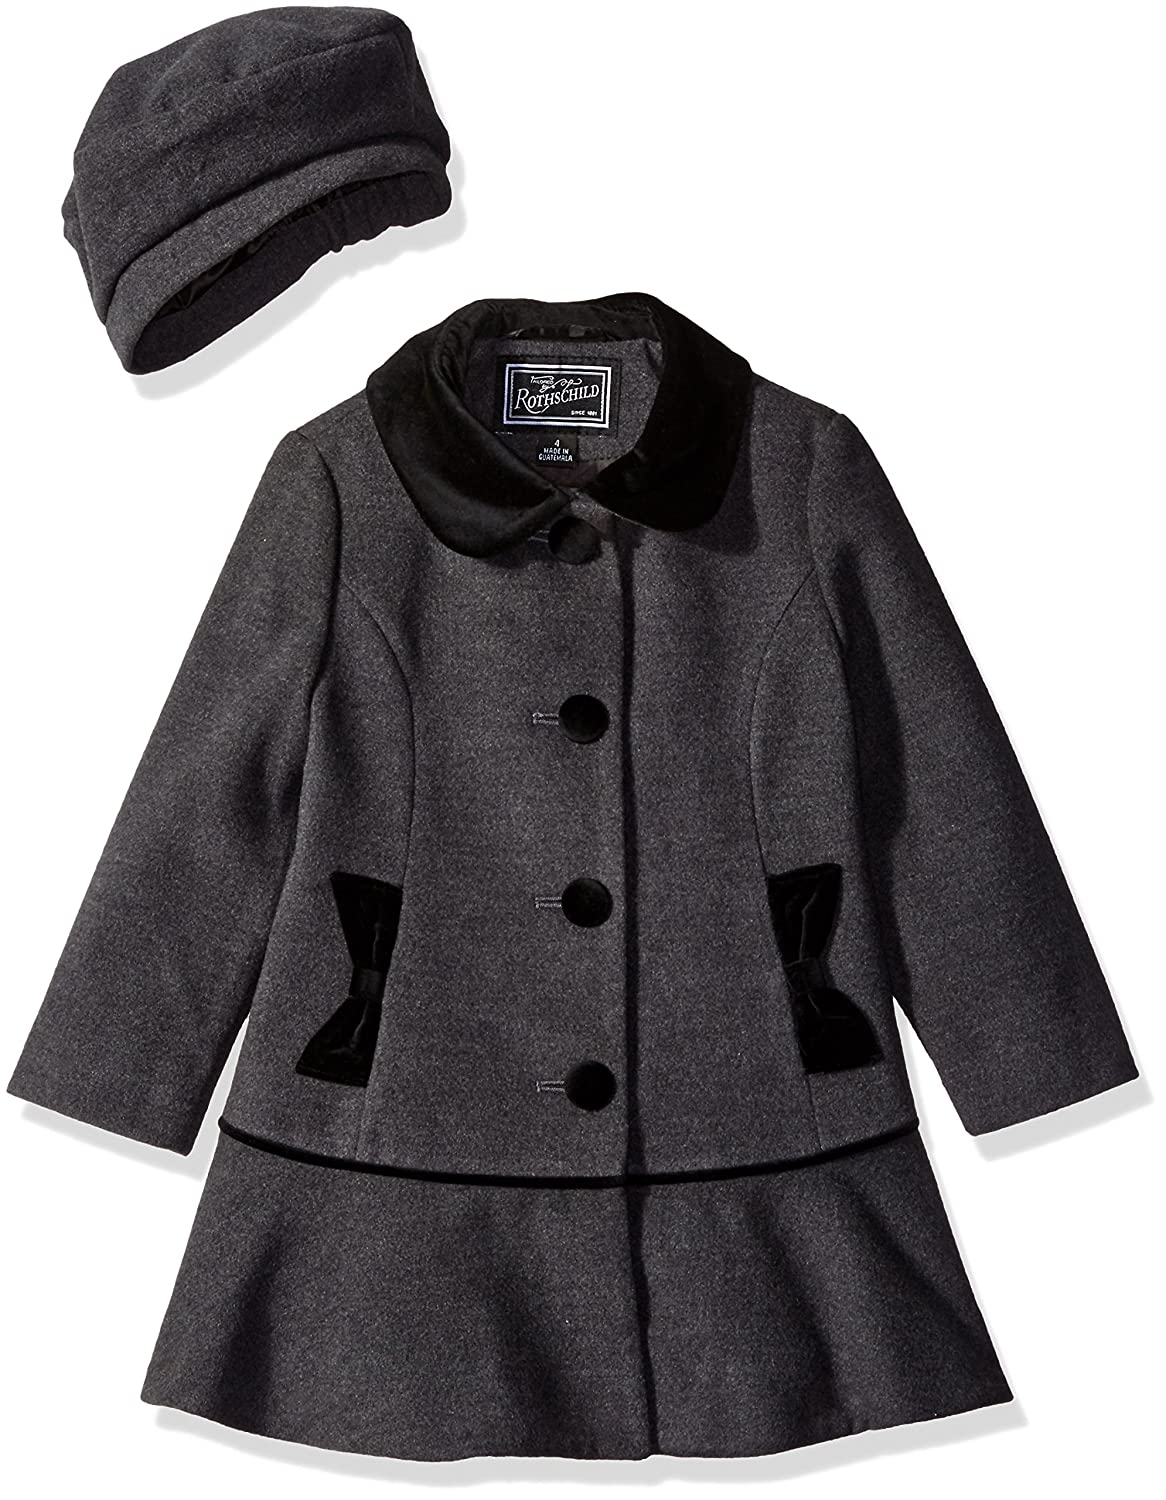 Rothschild Girls Faux Wool Coat with Velvet Bow